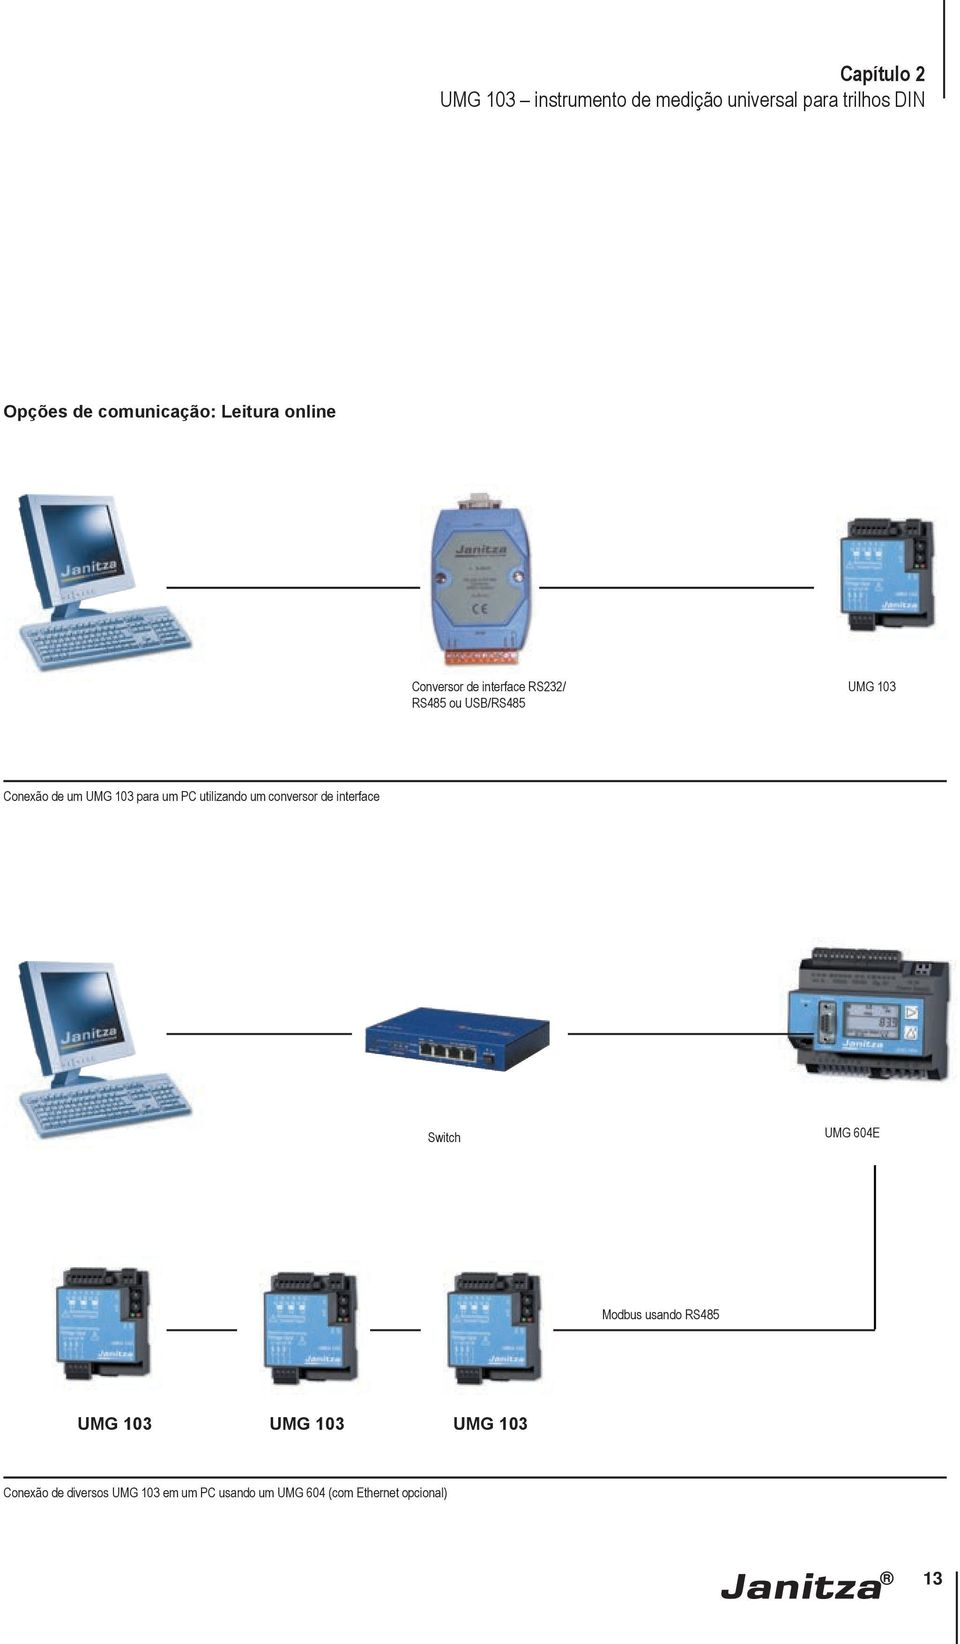 para um PC utilizando um conversor de interface Switch UMG 604E Modbus usando RS485 UMG 103